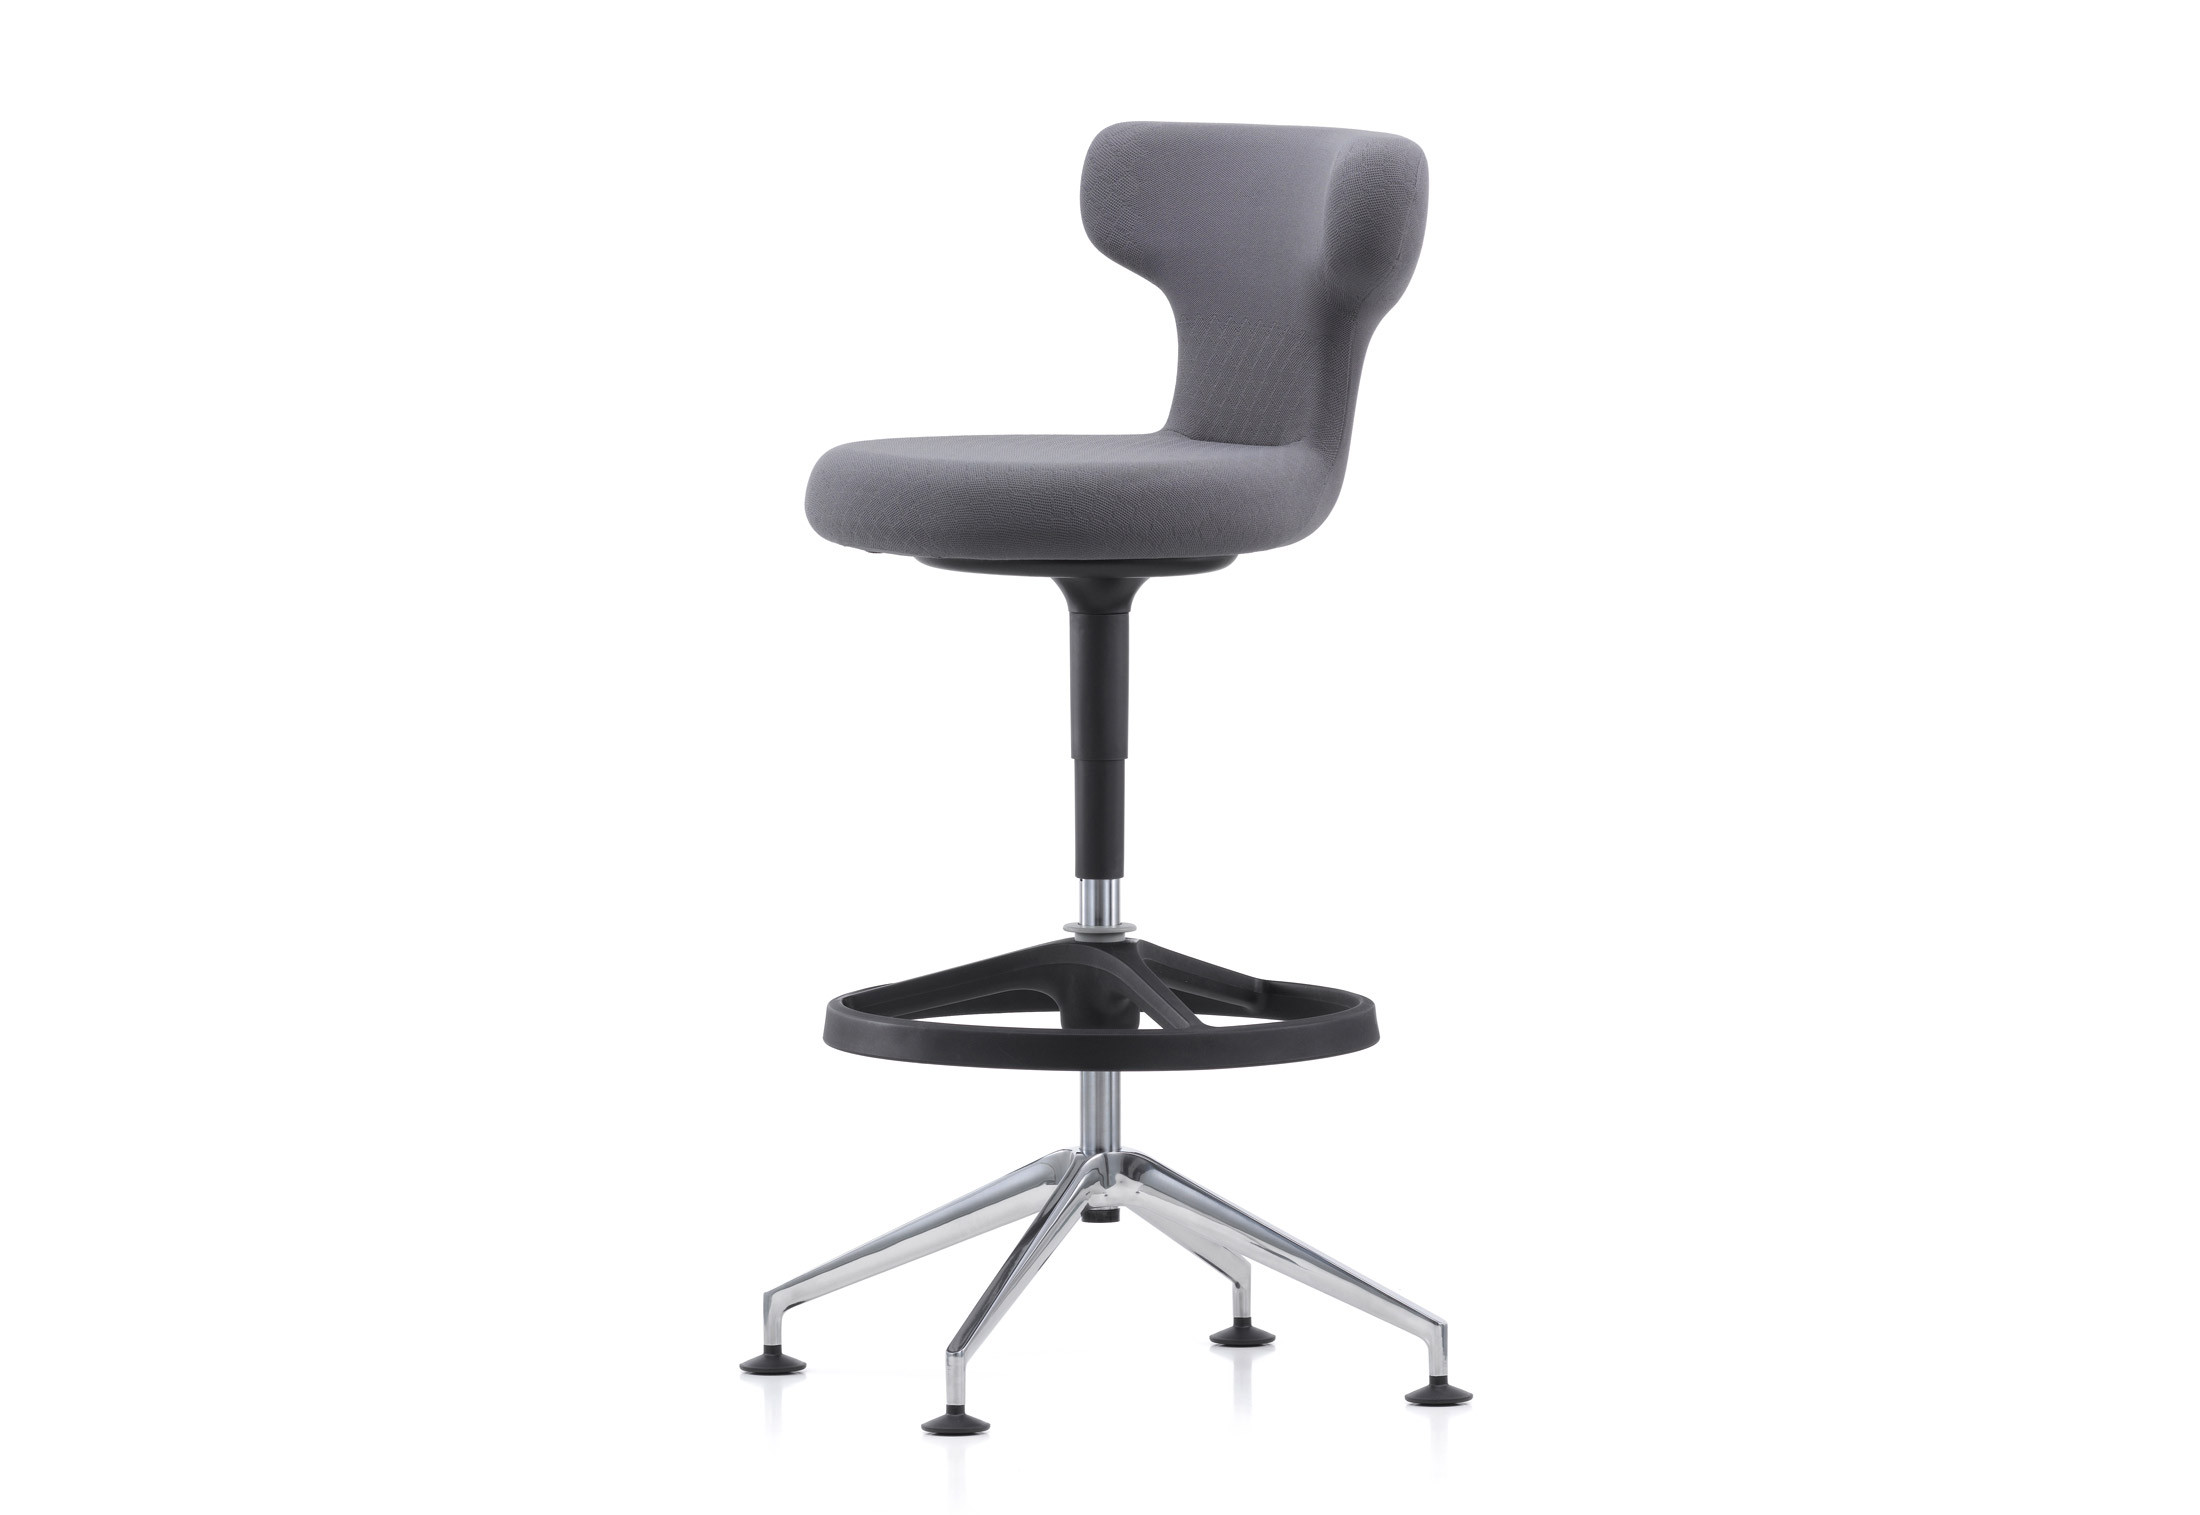 Best ideas about High Office Chair . Save or Pin Pivot high office chair by Vitra Now.